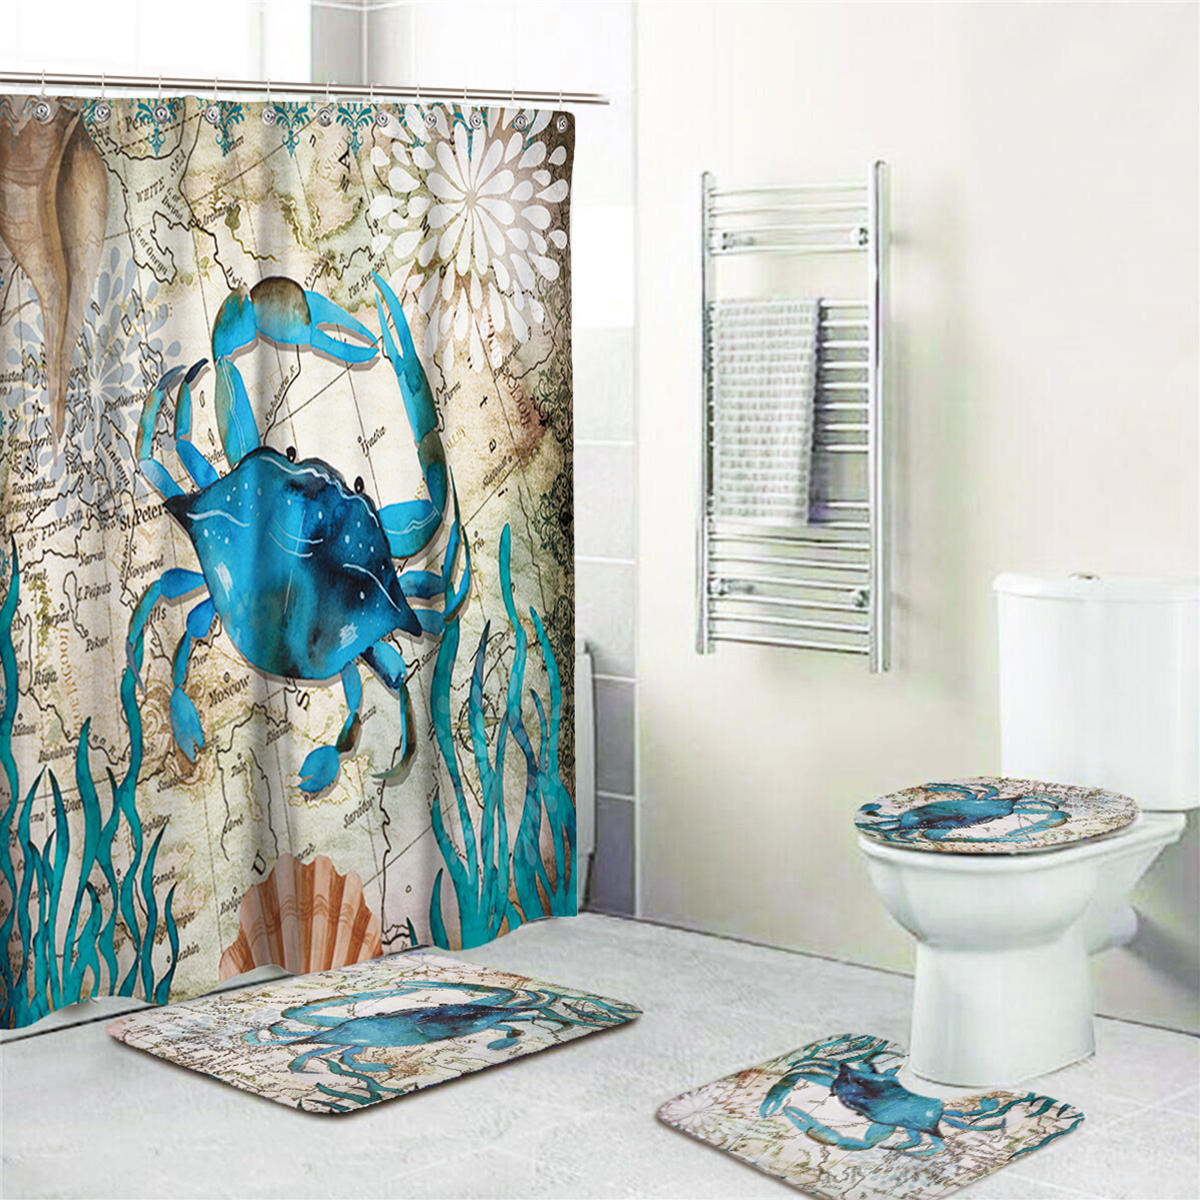 Bathroom Shower Curtain Crab Printing Bathroom Shower Curtain Toilet Cover Mat Non Slip Rug Set